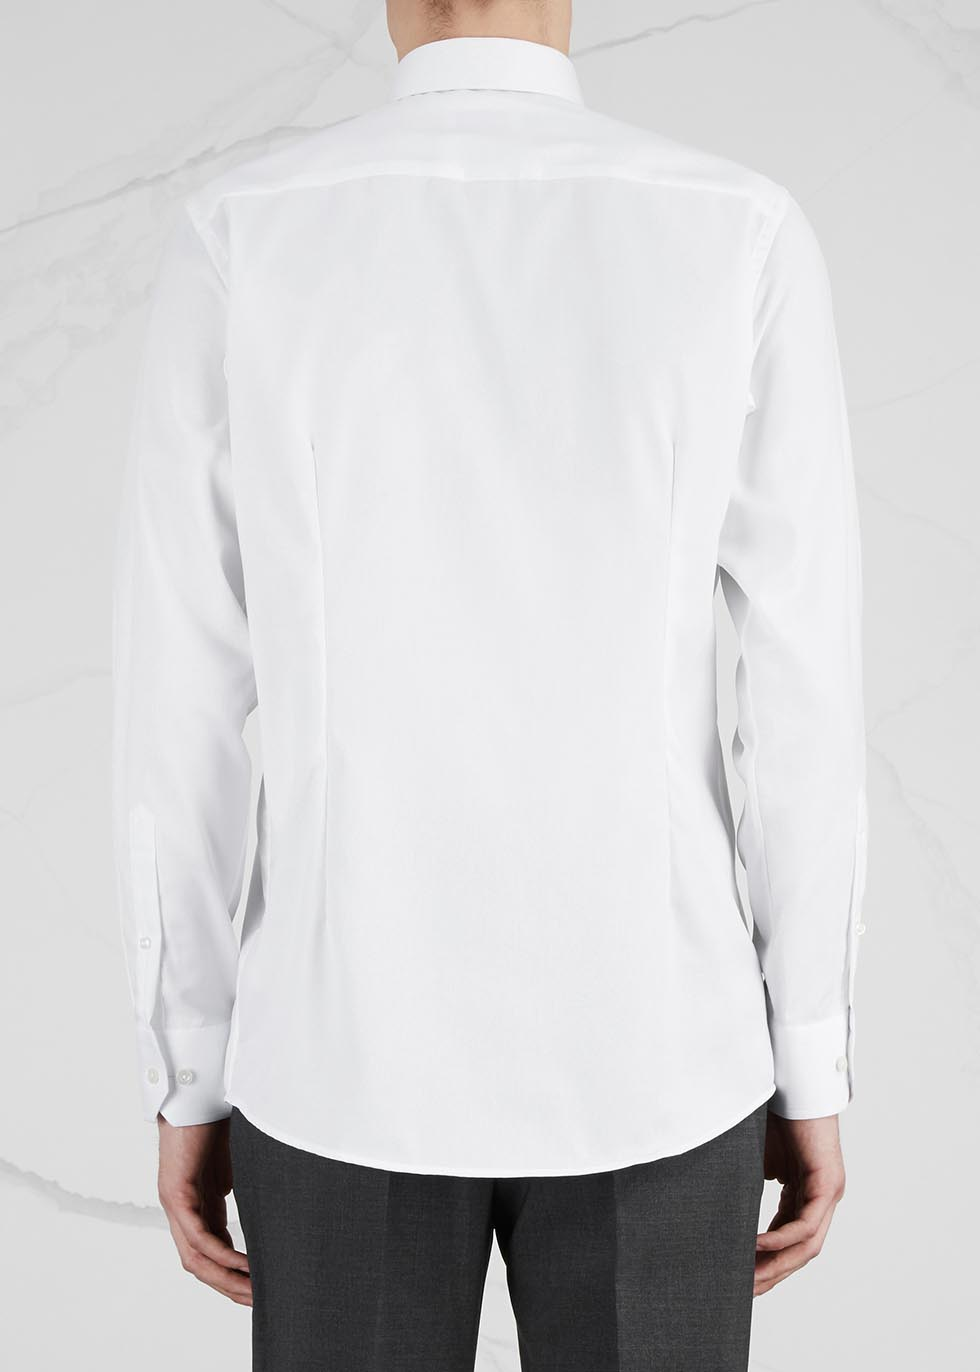 White contemporary cotton shirt - Eton